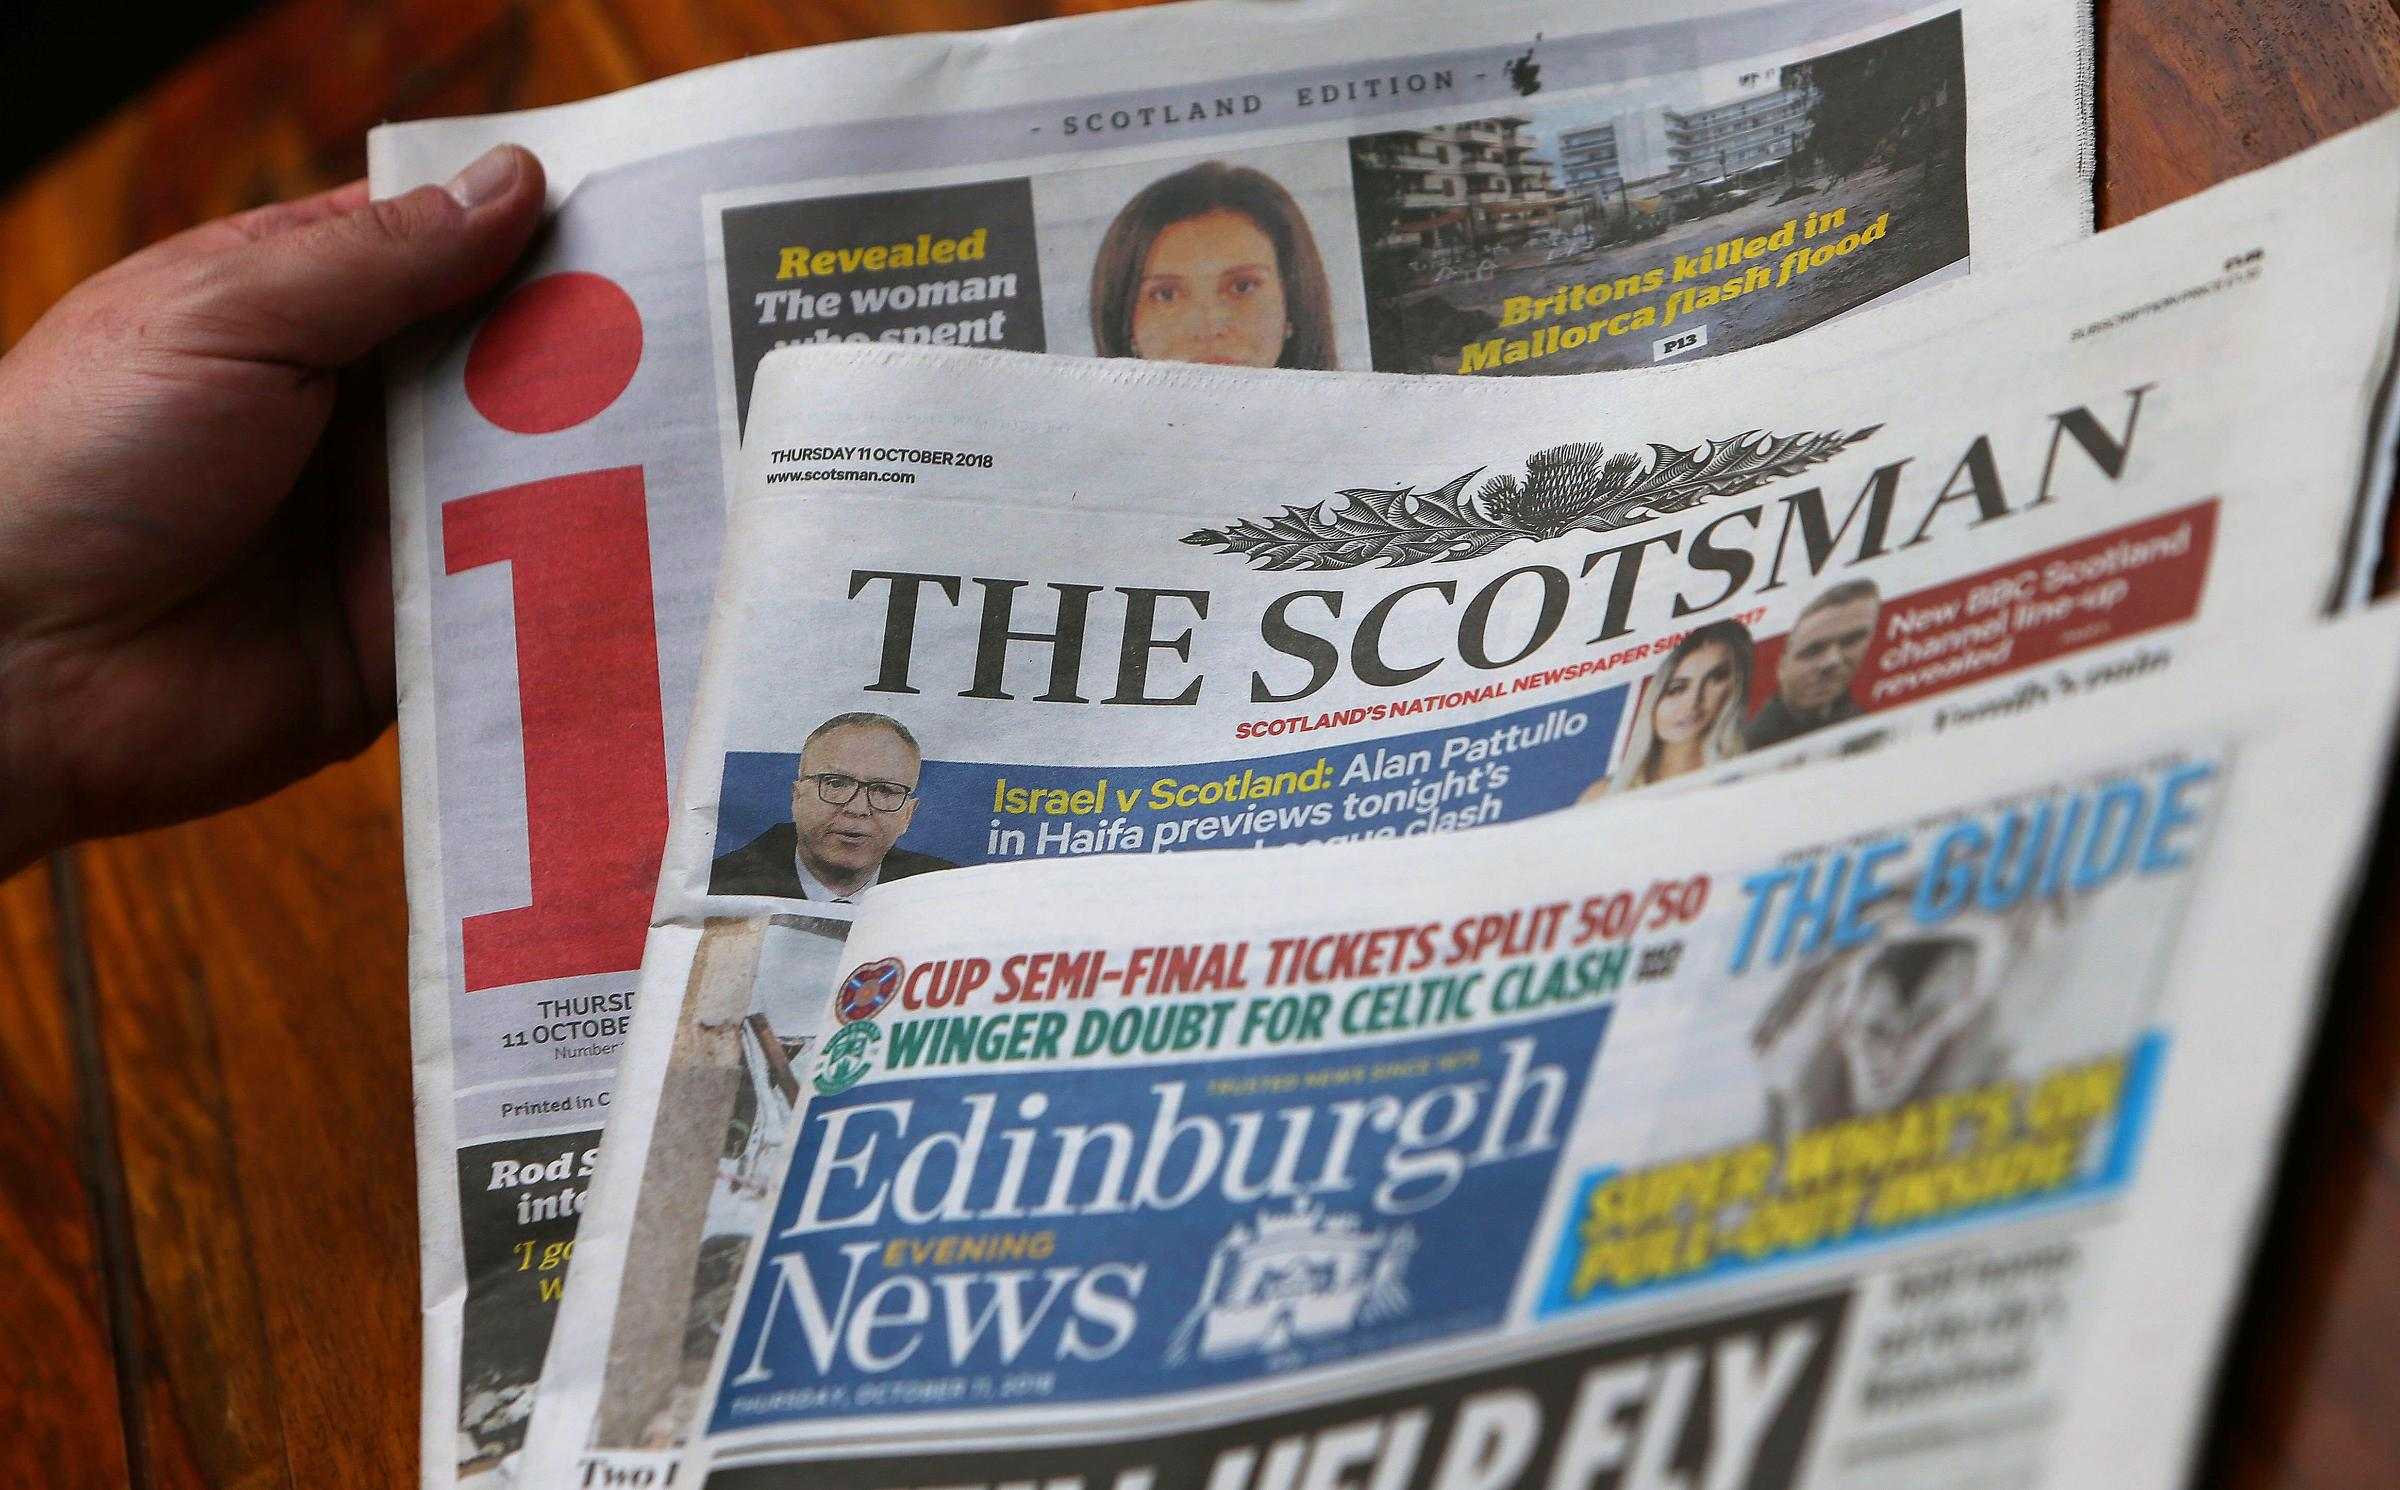 Marianne Taylor: Why it's so wrong to rejoice at the demise of newspapers